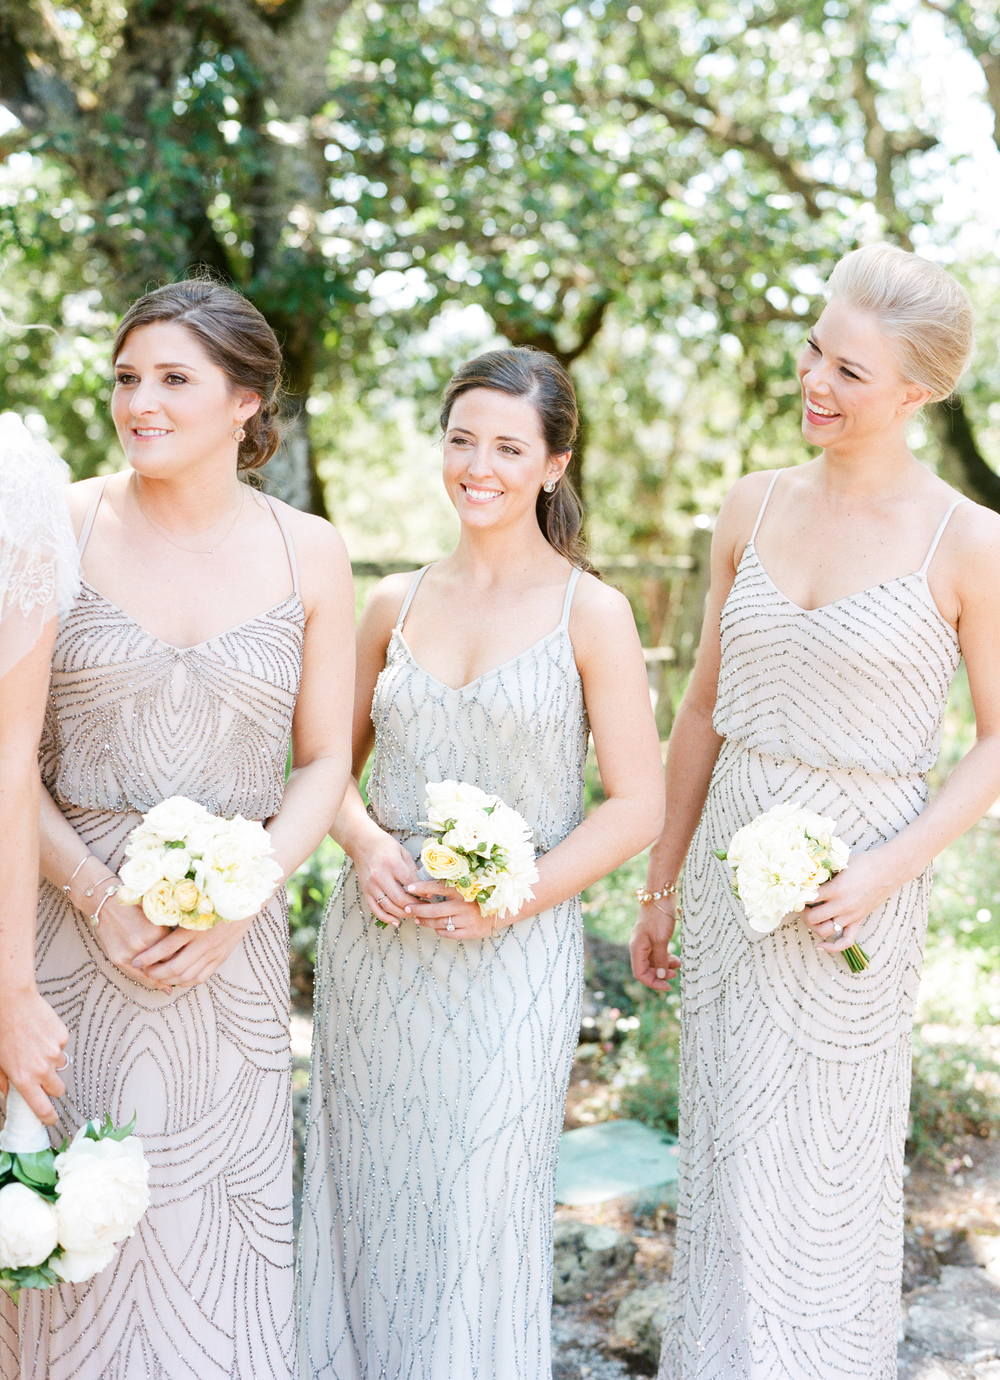 The bridesmaids, dressed in loose, sequined gowns smile toward the bride on her wedding day, holding white bouquets; photo by Sylvie Gil